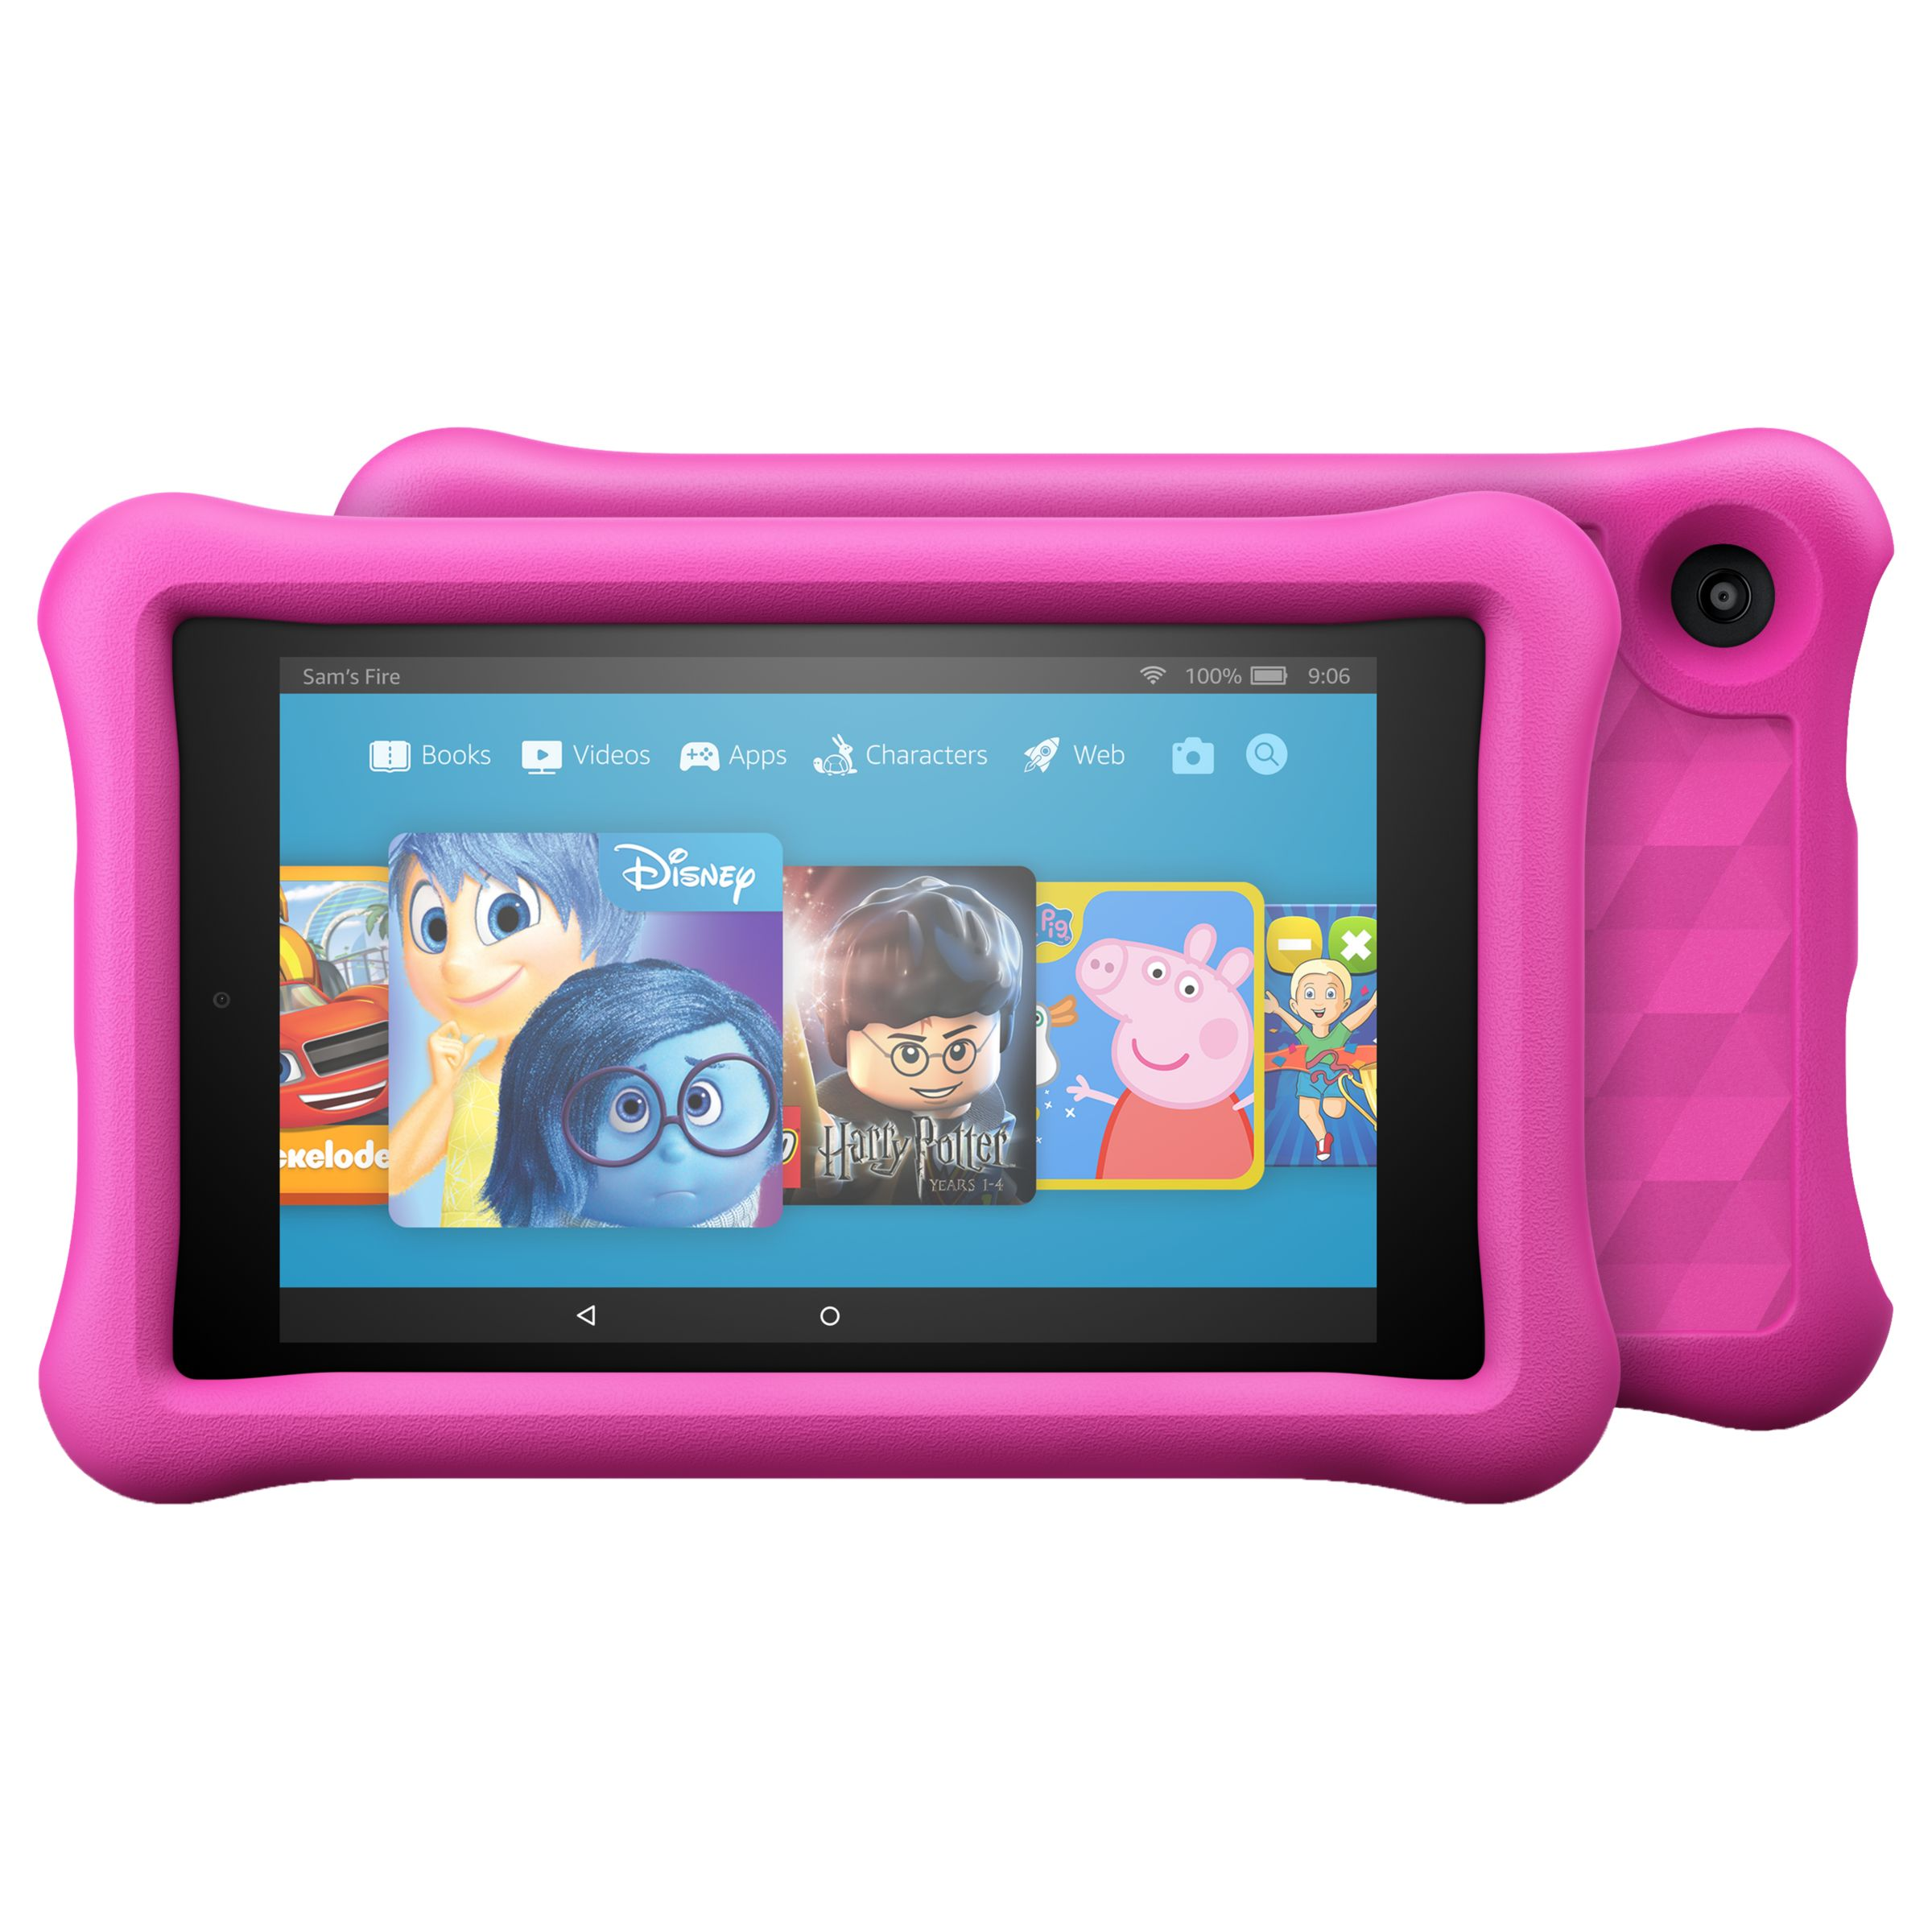 "Amazon Fire HD 8 Kids Edition Tablet with Kid-Proof Case, Quad-core, Fire OS, Wi-Fi, 32GB, 8"", Pink"